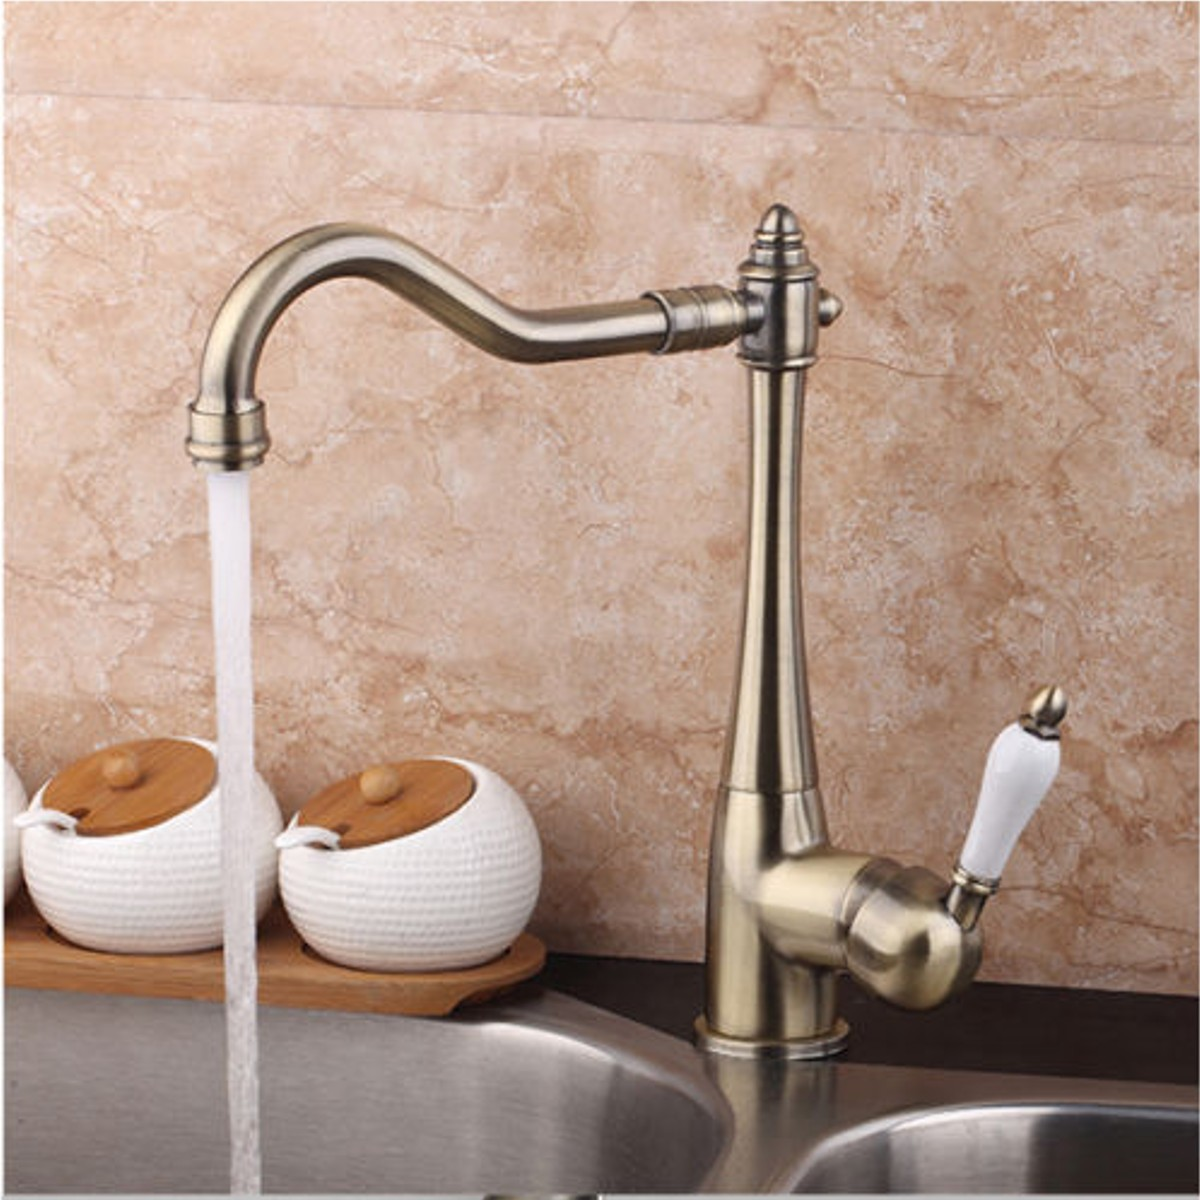 Xueqin Antique Copper Bathroom Basin Faucet Deck Mounted Classic Single Handle Mixer Tap Bathroom Sink Faucet Hot and Cold Water cock robin